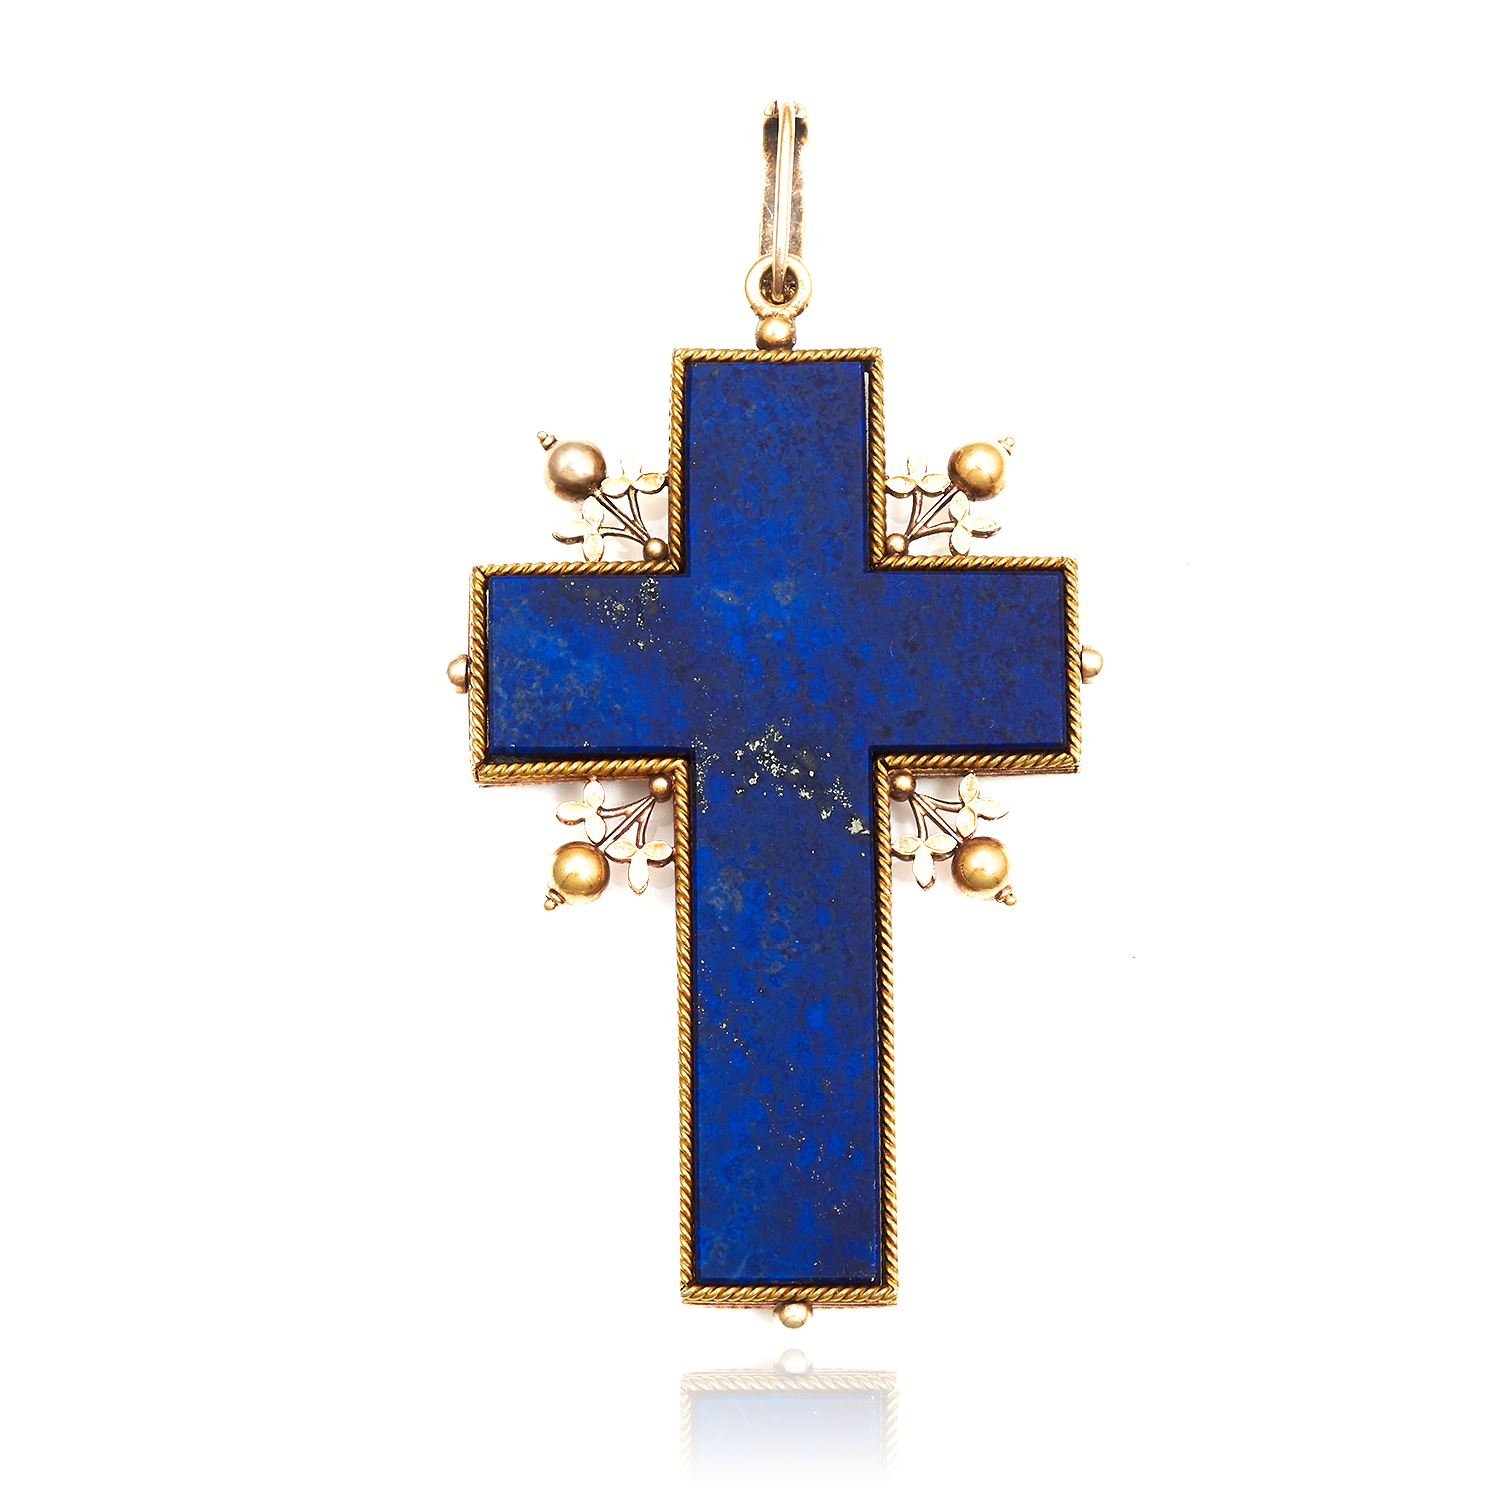 Los 60 - AN ANTIQUE LAPIS LAZULI CRUCIFIX / CROSS PENDANT, CARLO GIULIANO in high carat yellow gold, set with